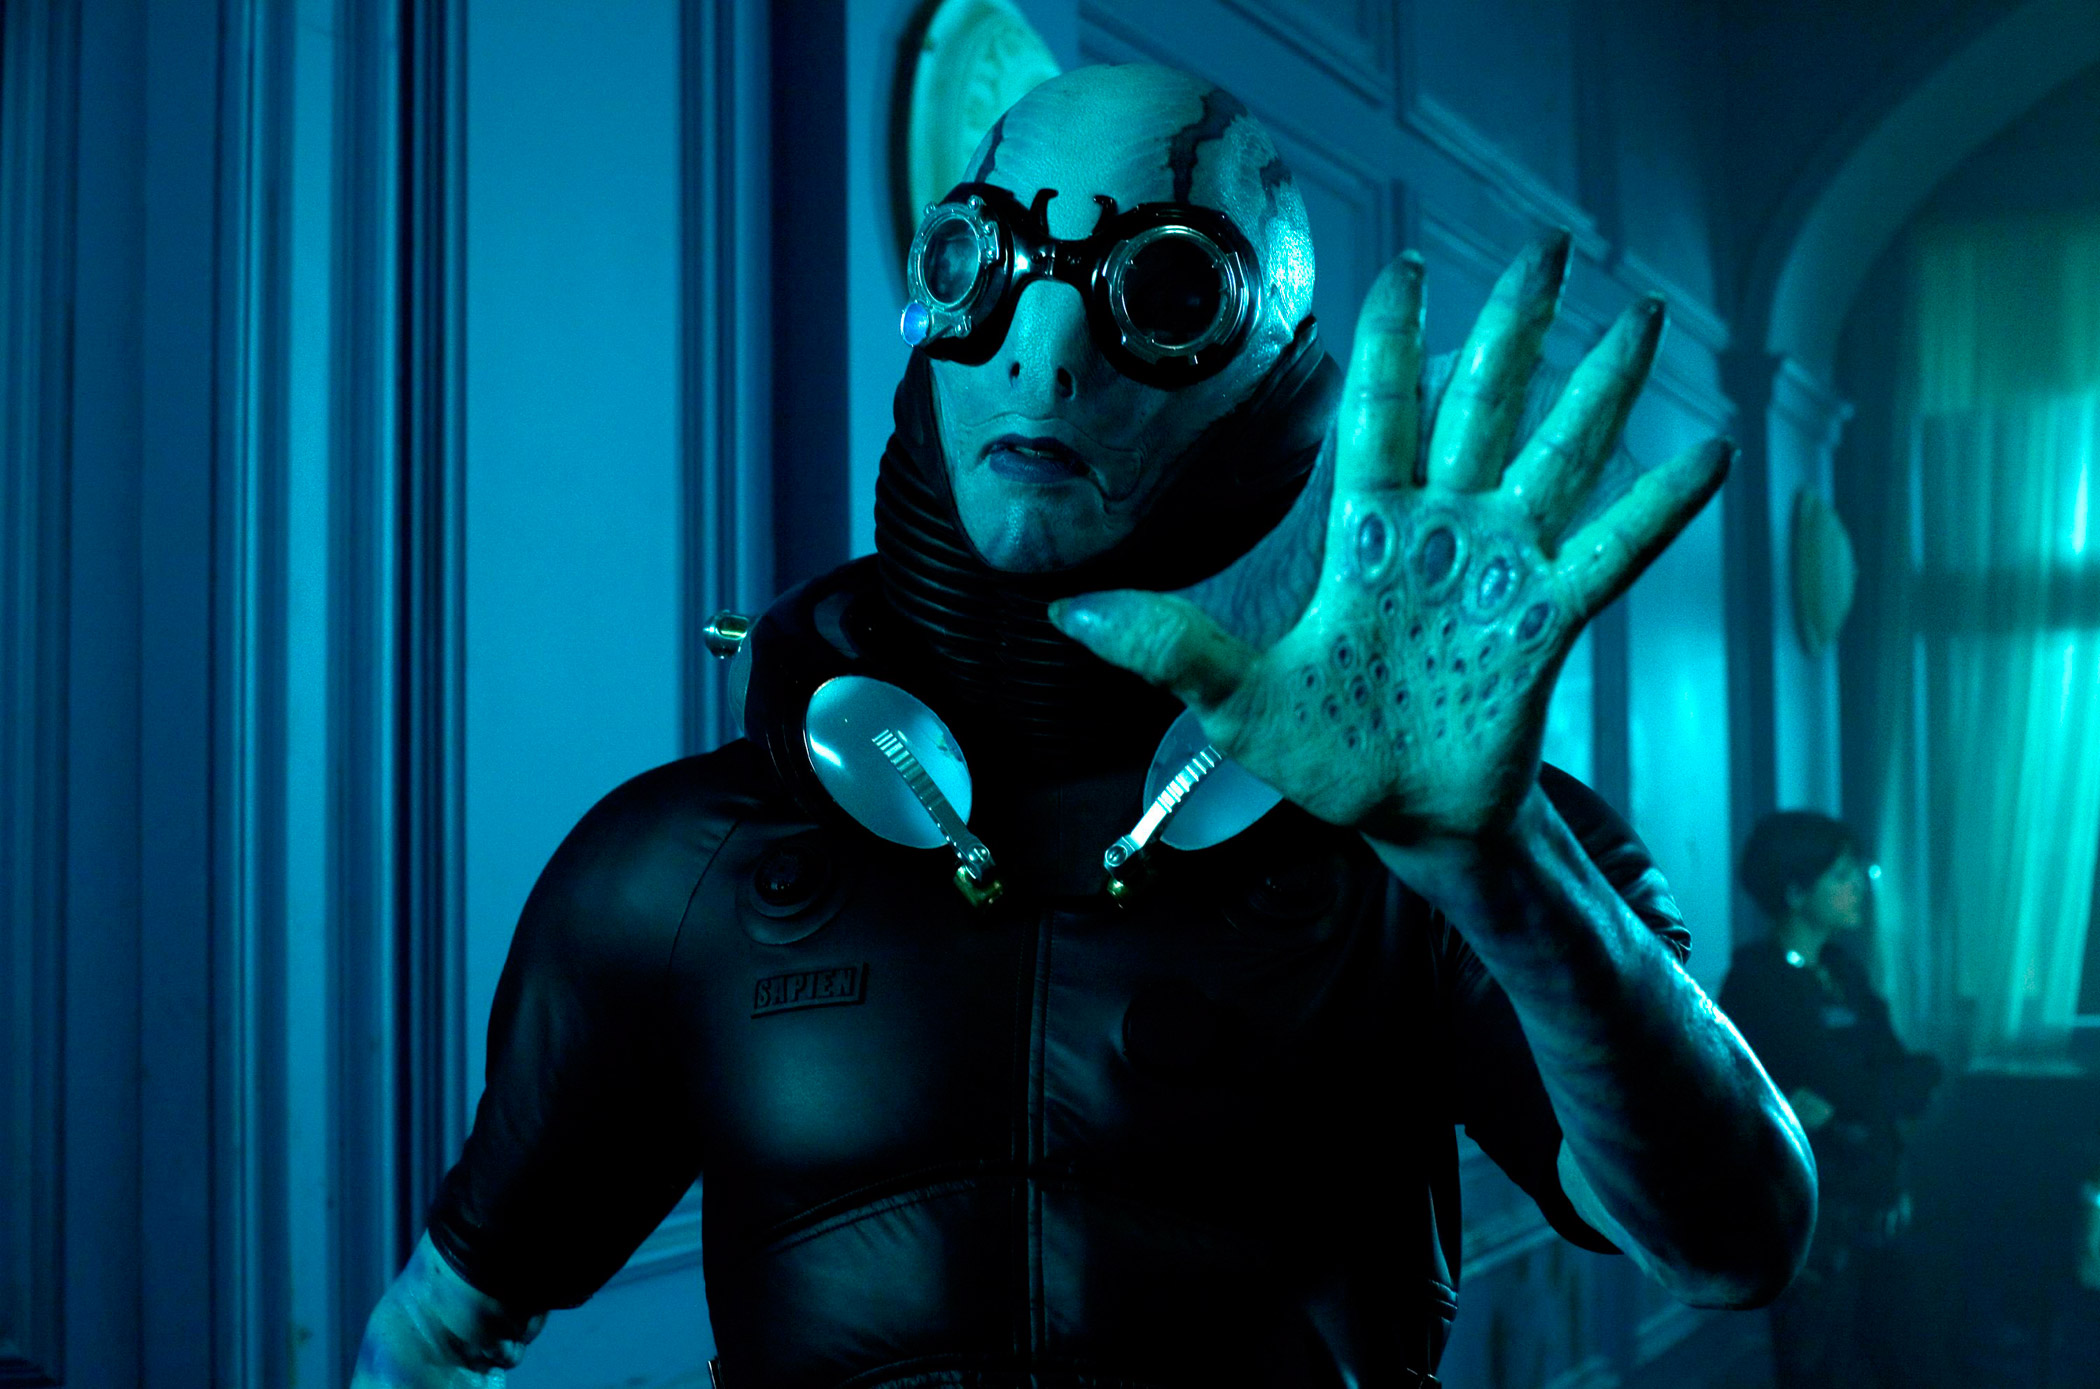 Doug Jones as Abe Spaien in Hellboy II: The Golden Army, 2008.